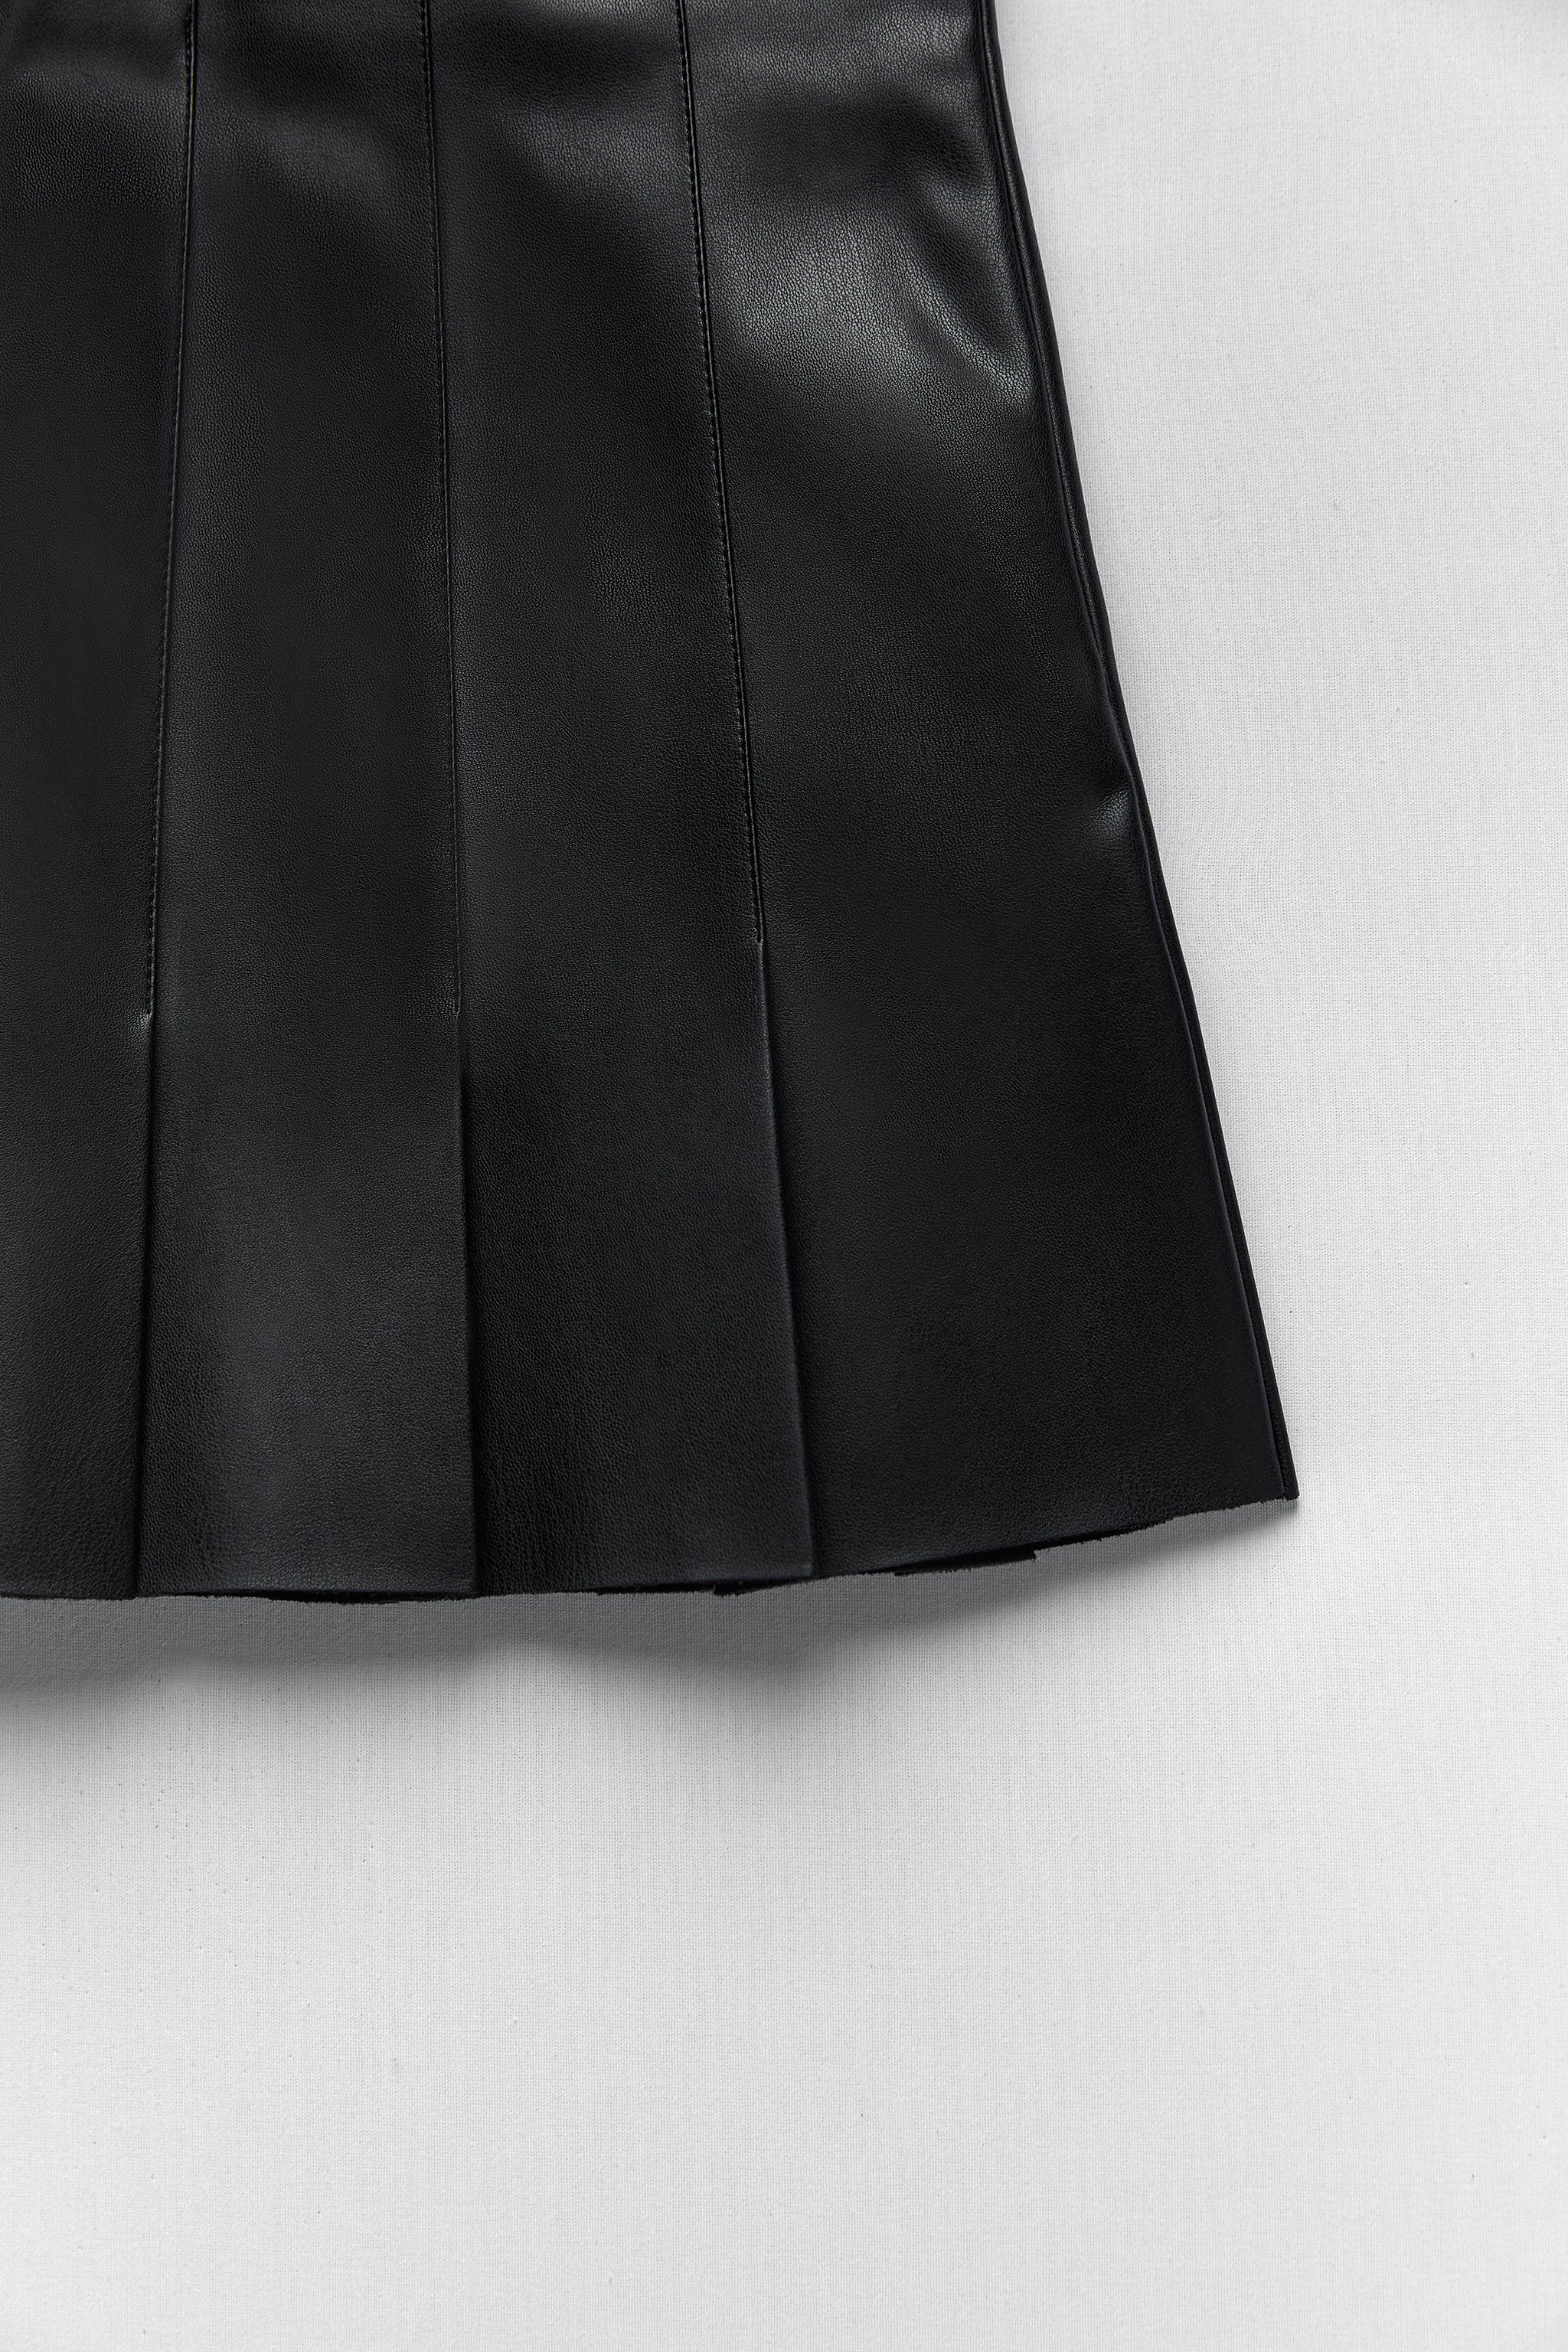 FAUX LEATHER BOX PLEAT SKIRT 9